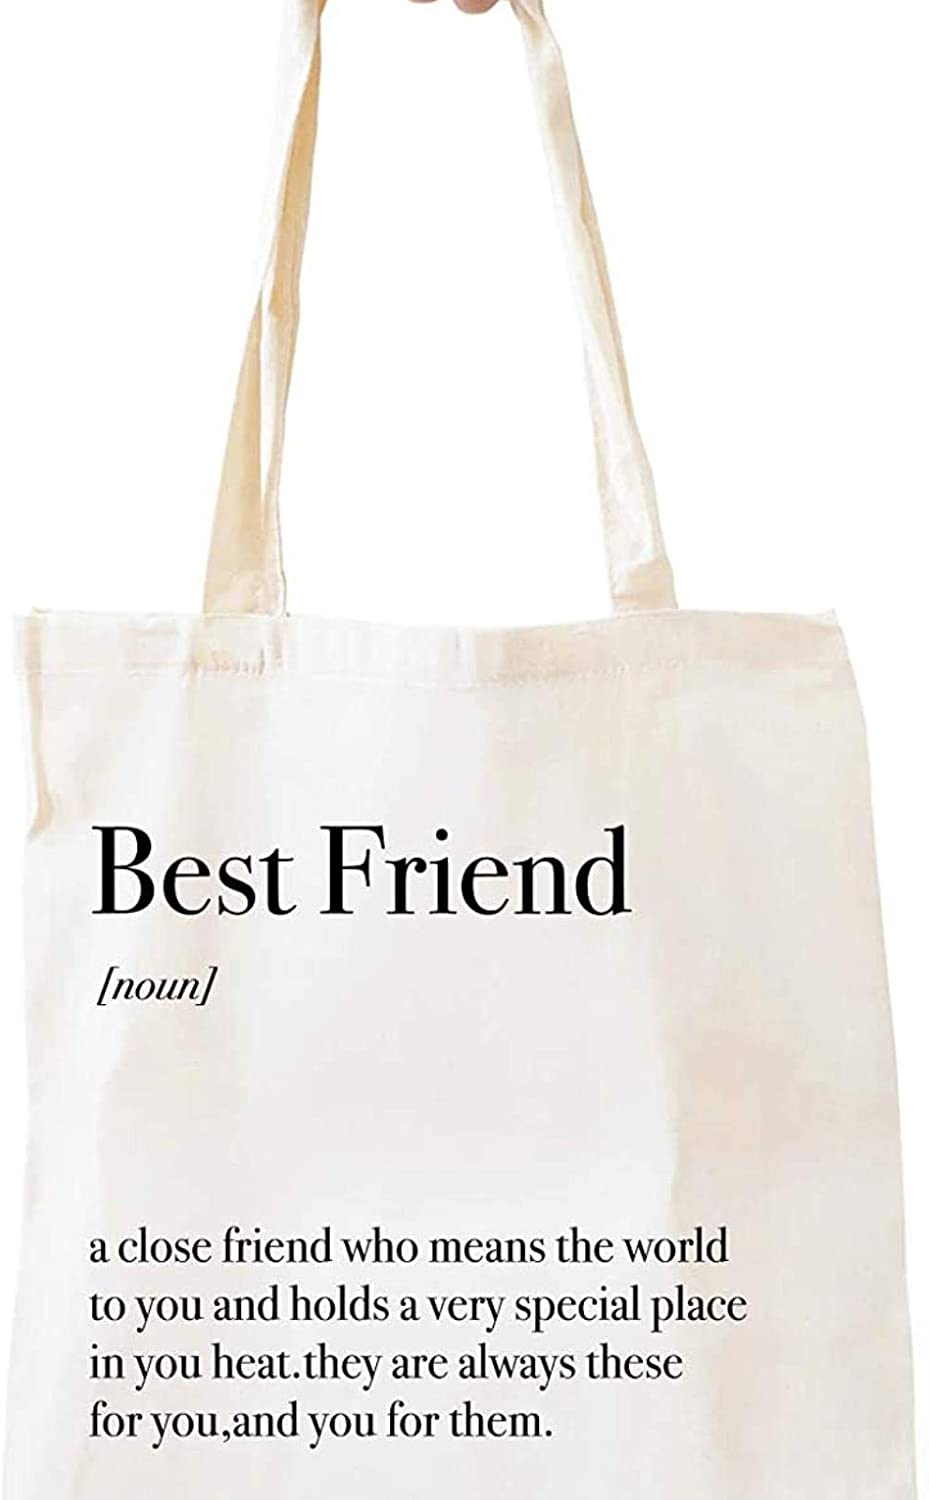 friendship-gifts-tote-bag